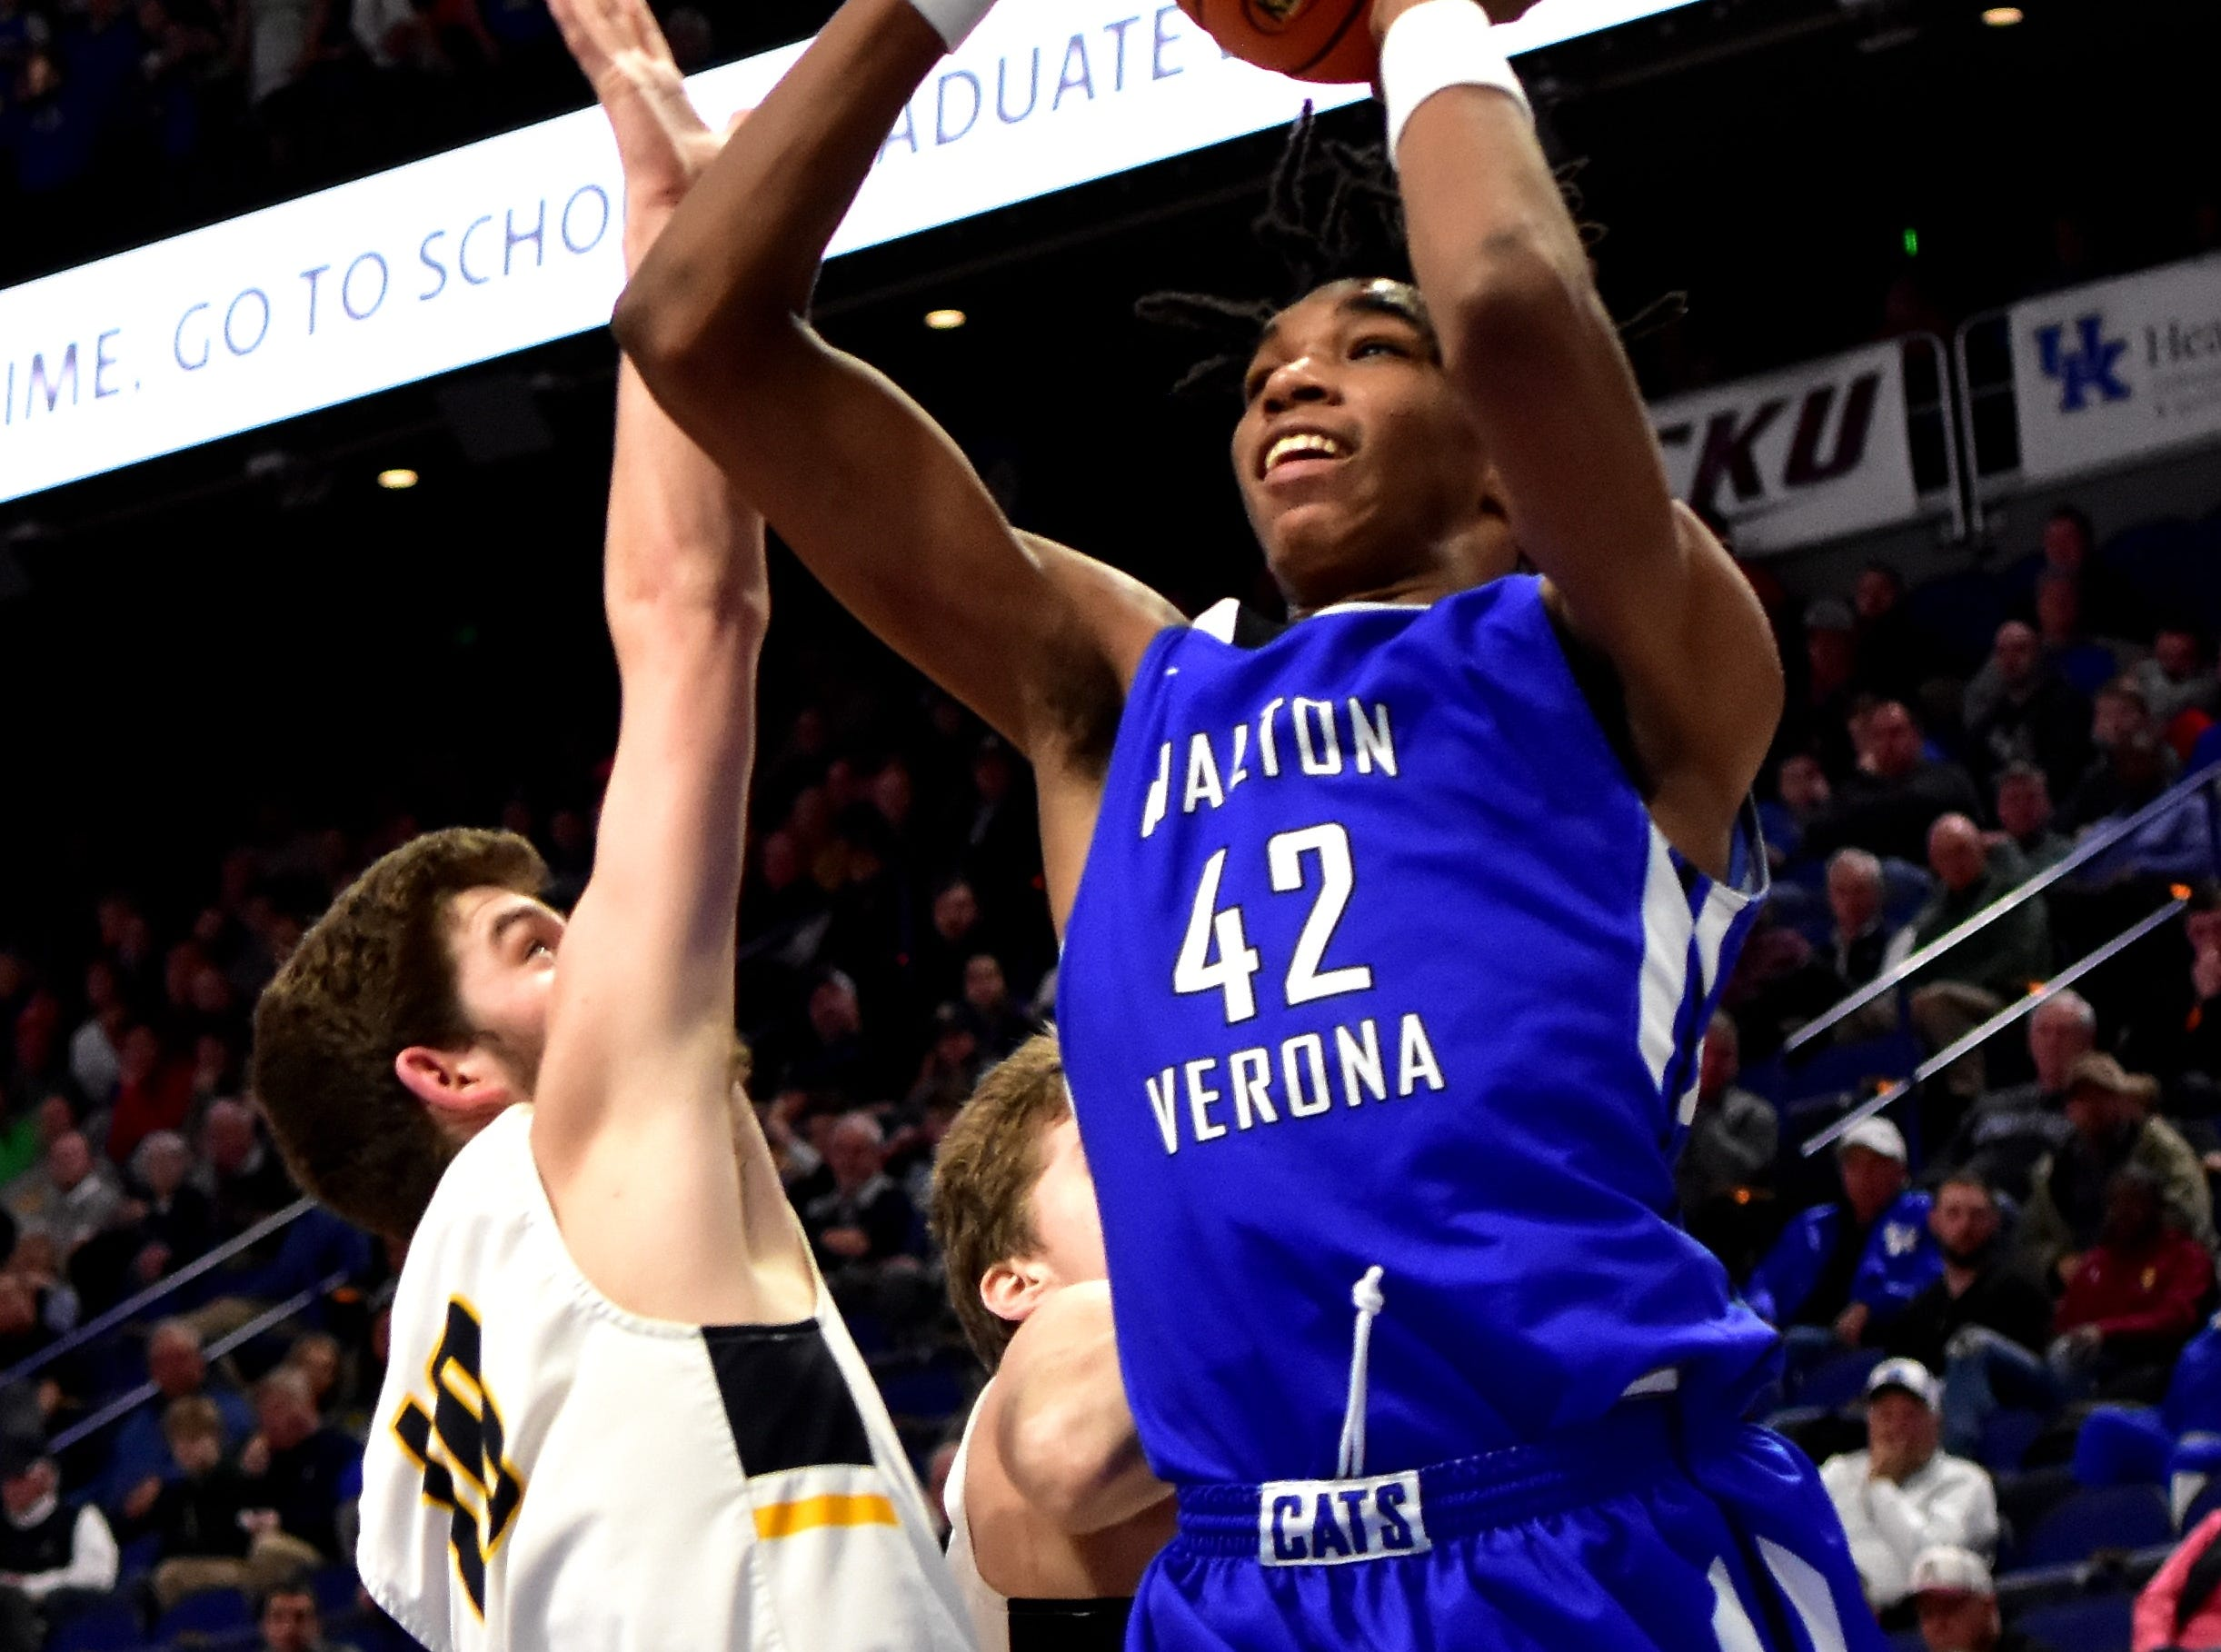 Dieonte Miles sees more point production for Walton Verona as they move on to second round action at the KHSAA Sweet 16 Tournament at Rupp Arena in Lexington, KY, March 6, 2019